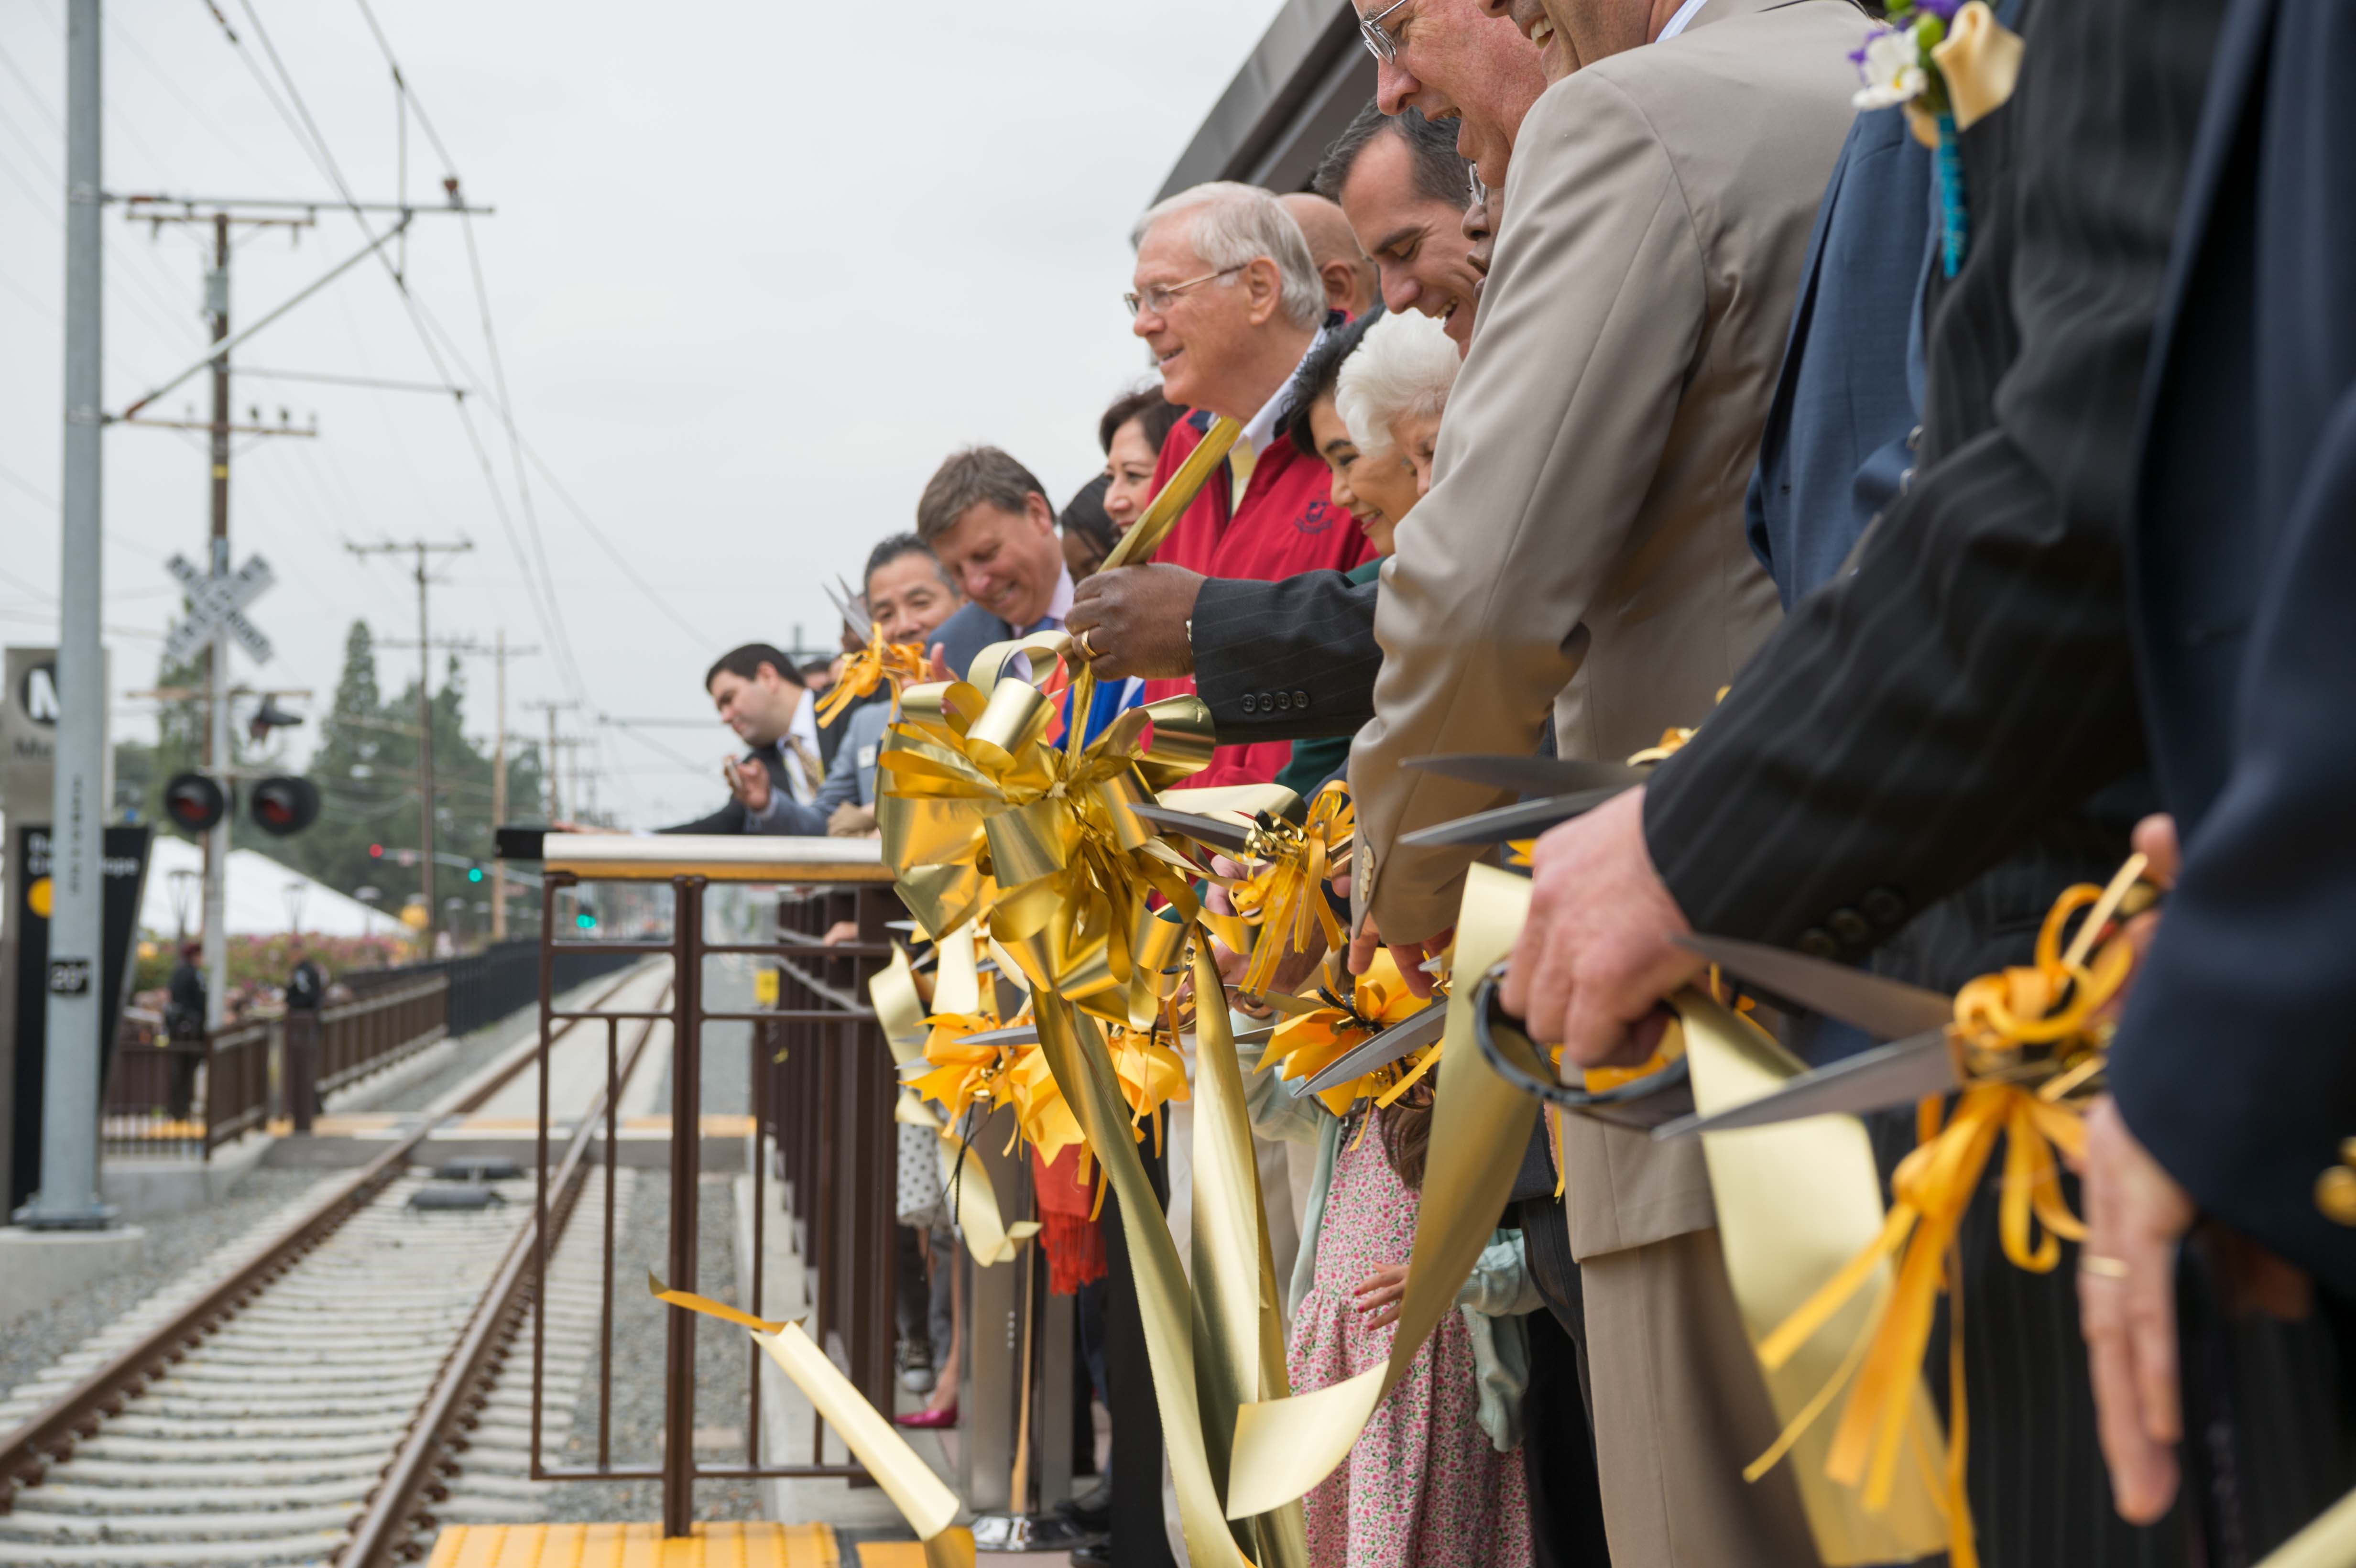 The big ribbon cutting at Duarte/City of Hope Station before trains started running.